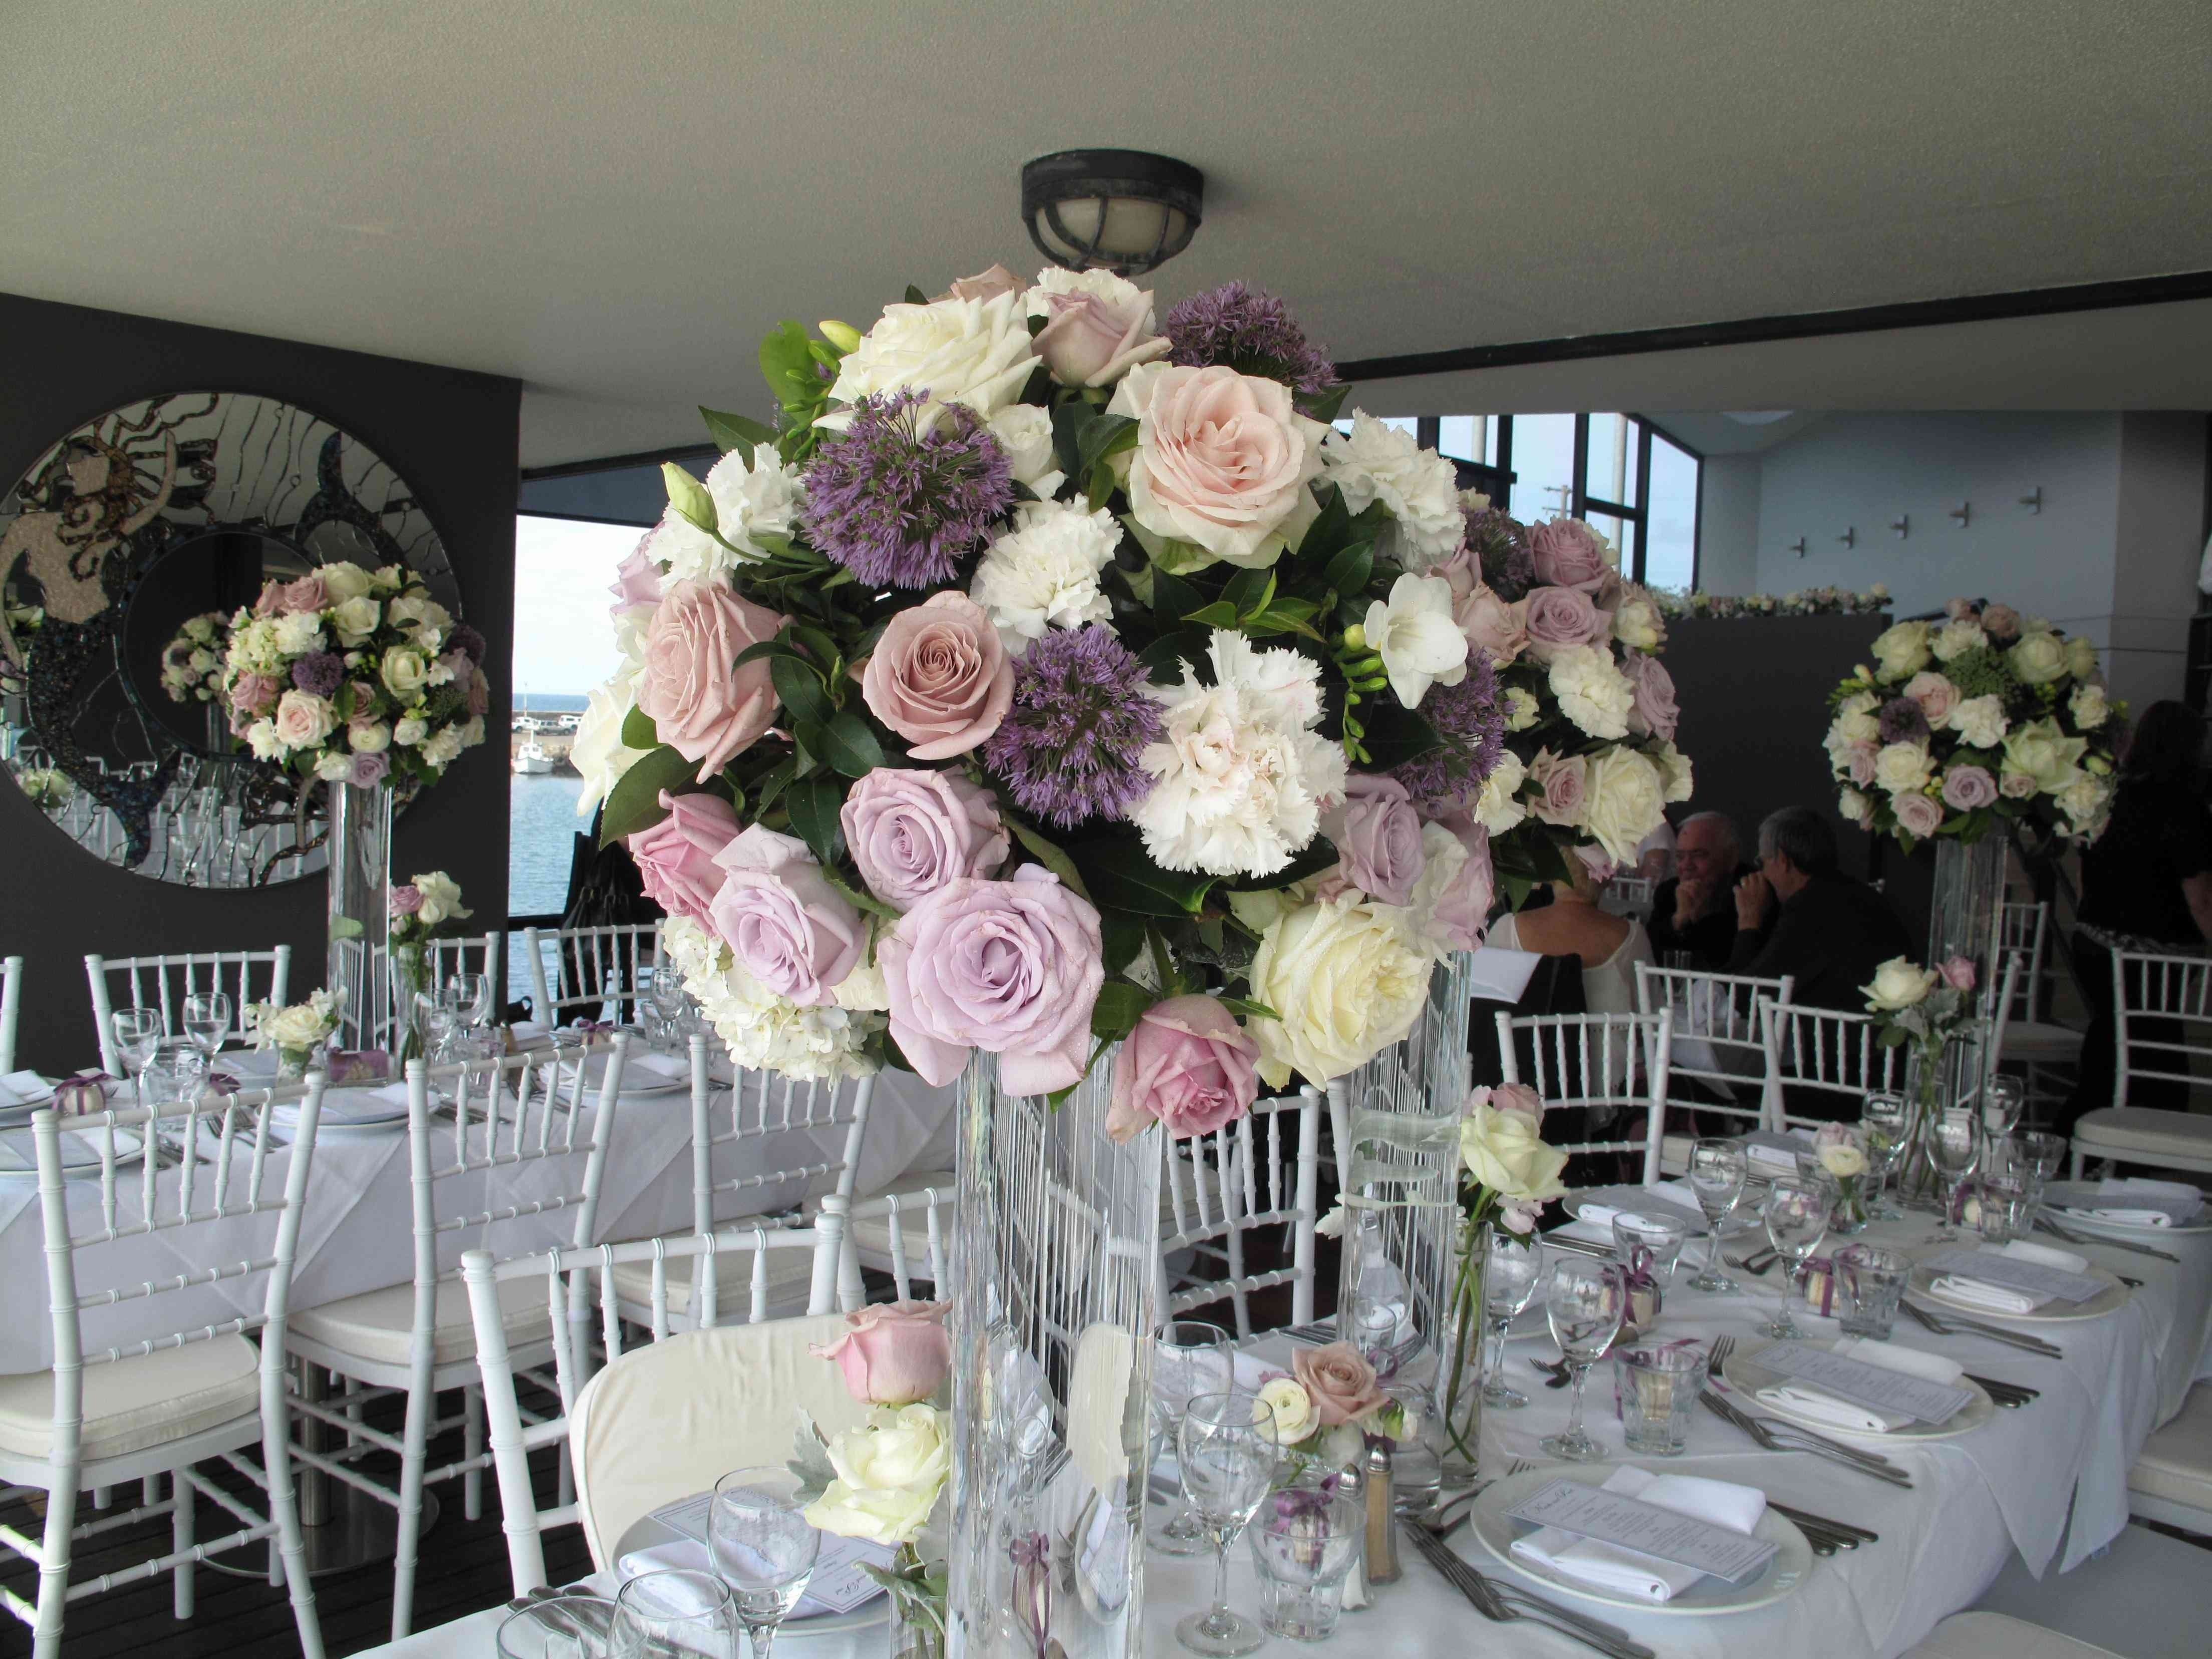 10 Unique Wedding Flowers And Reception Ideas 50 new winter wedding flowers images wedding concept ideas 2020